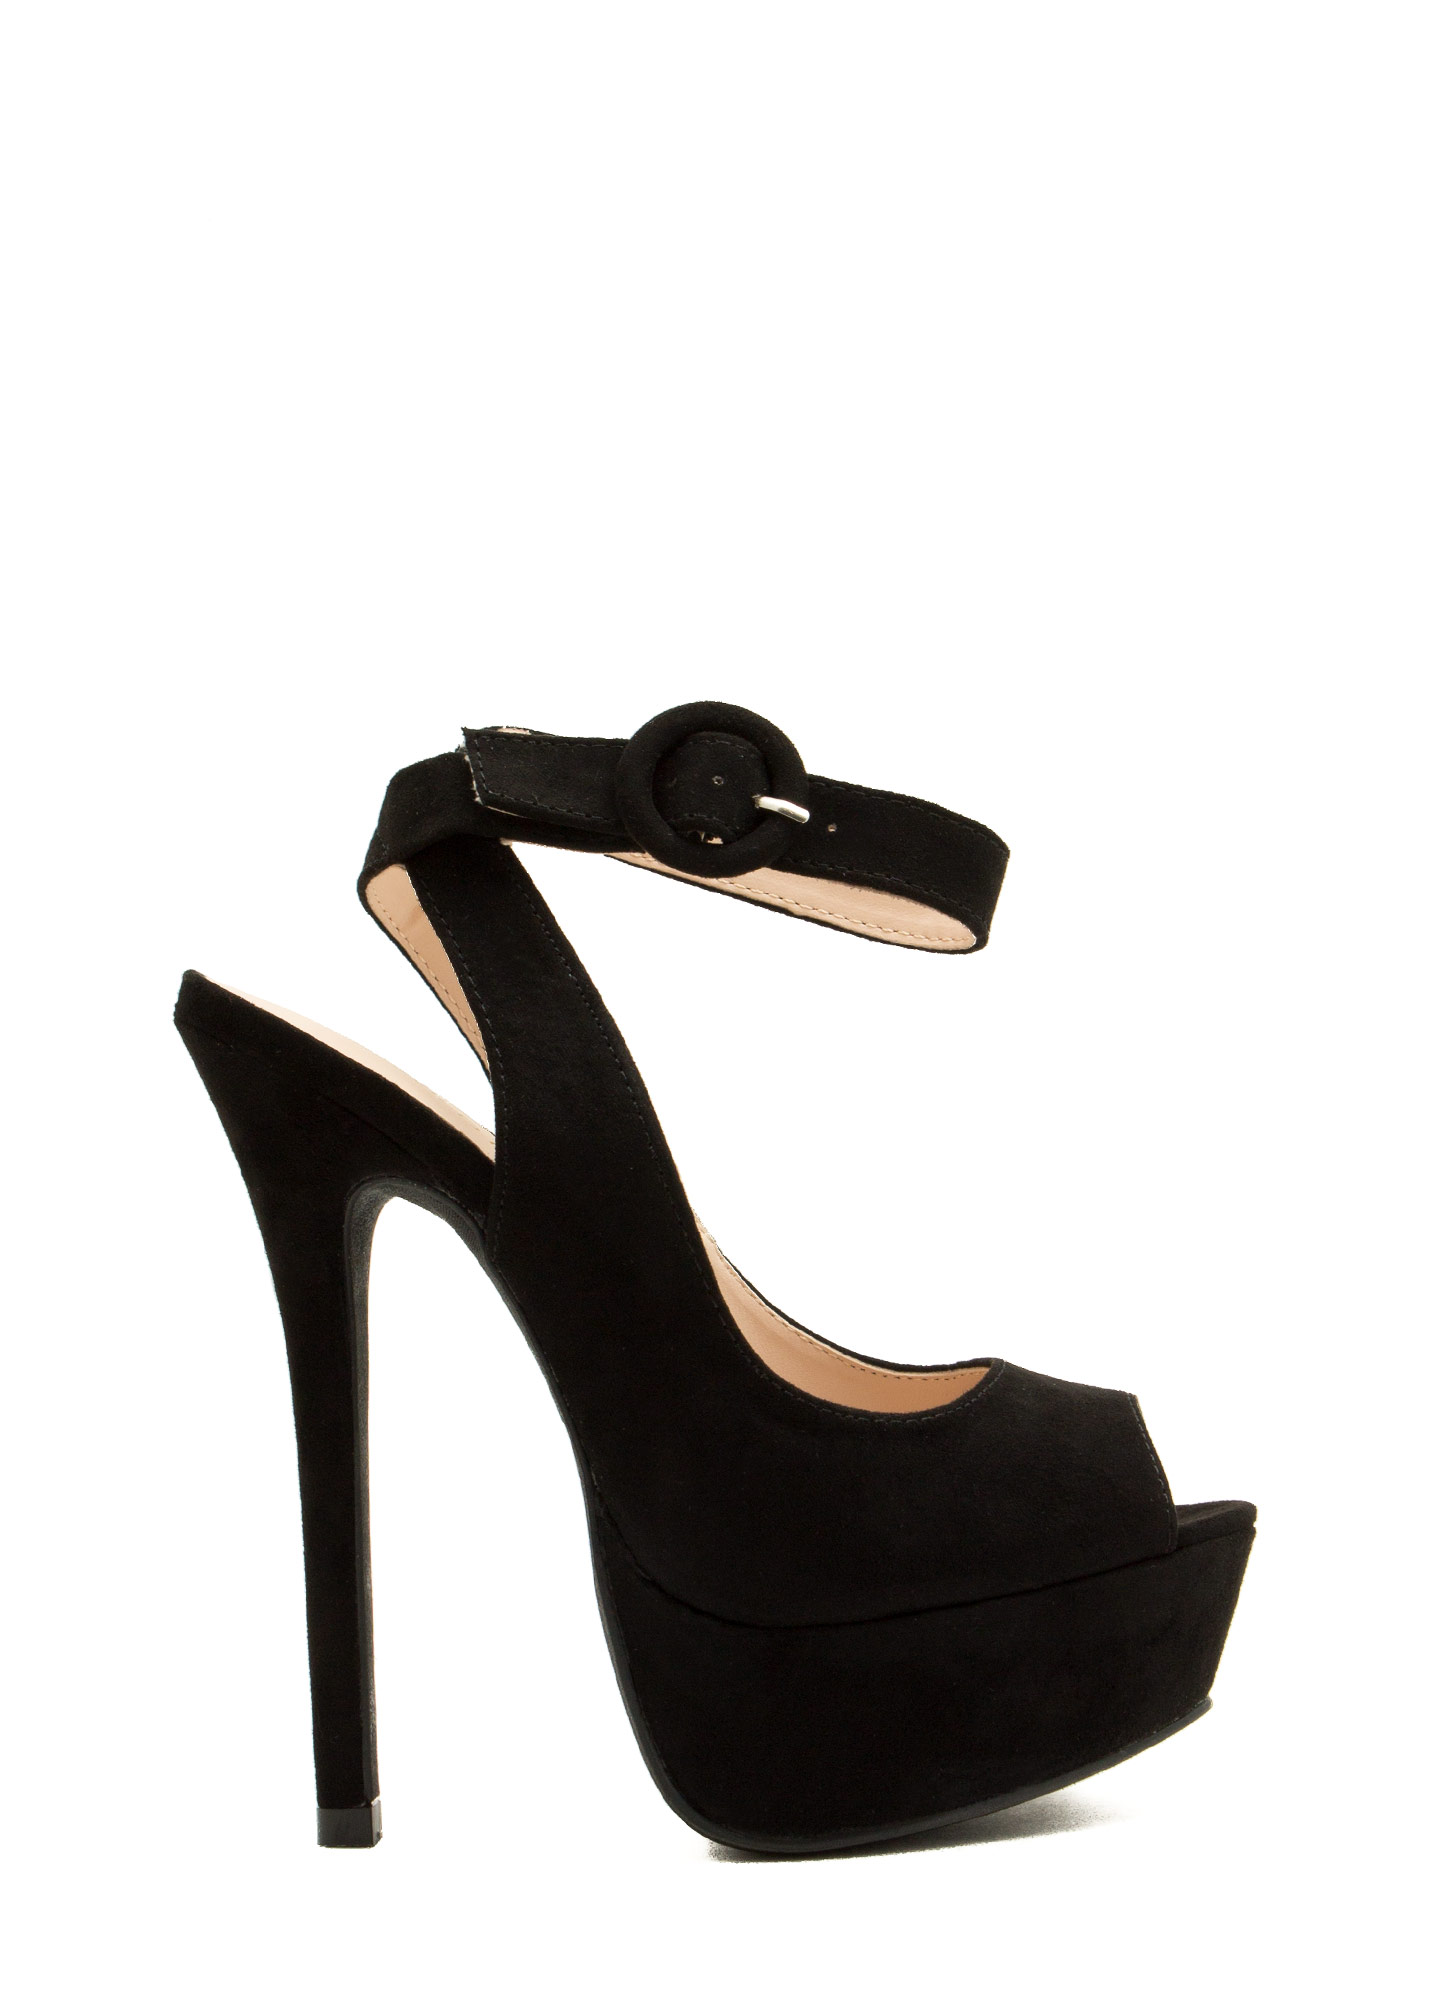 Peep-Toe Show Ankle Strap Platforms BLACK